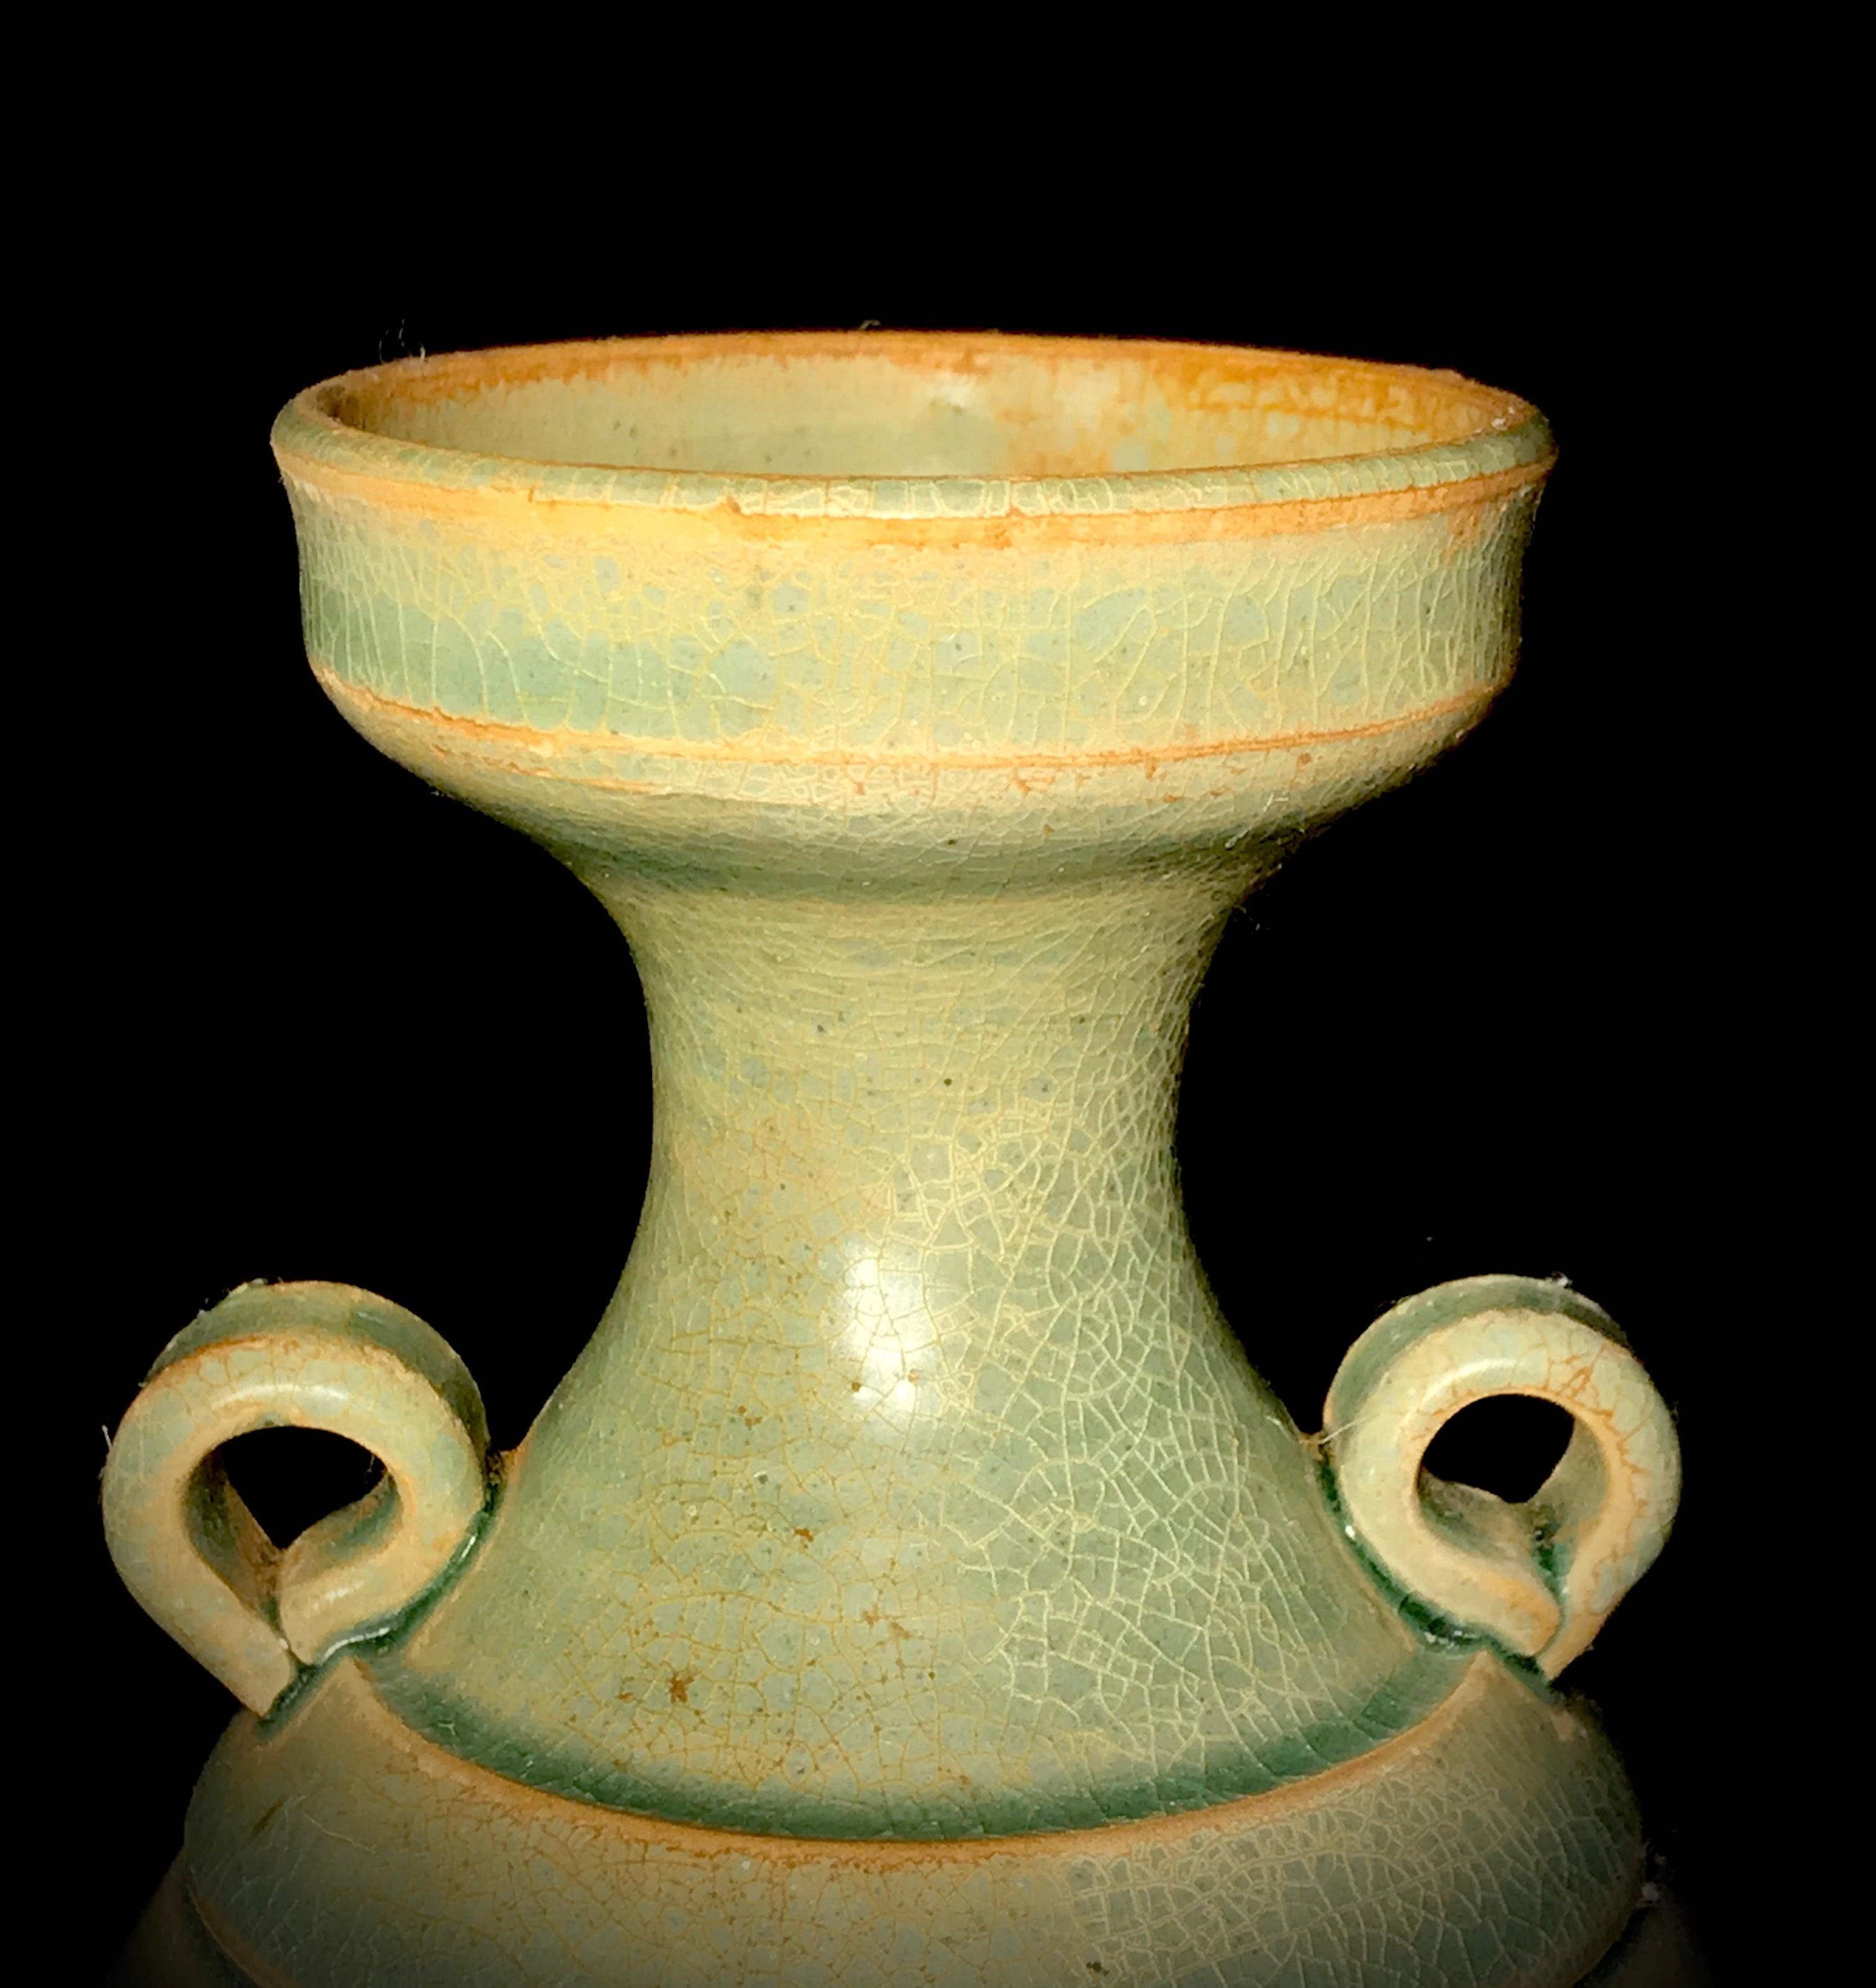 Song Dynasty Celadon Vase - 10 Dynasties